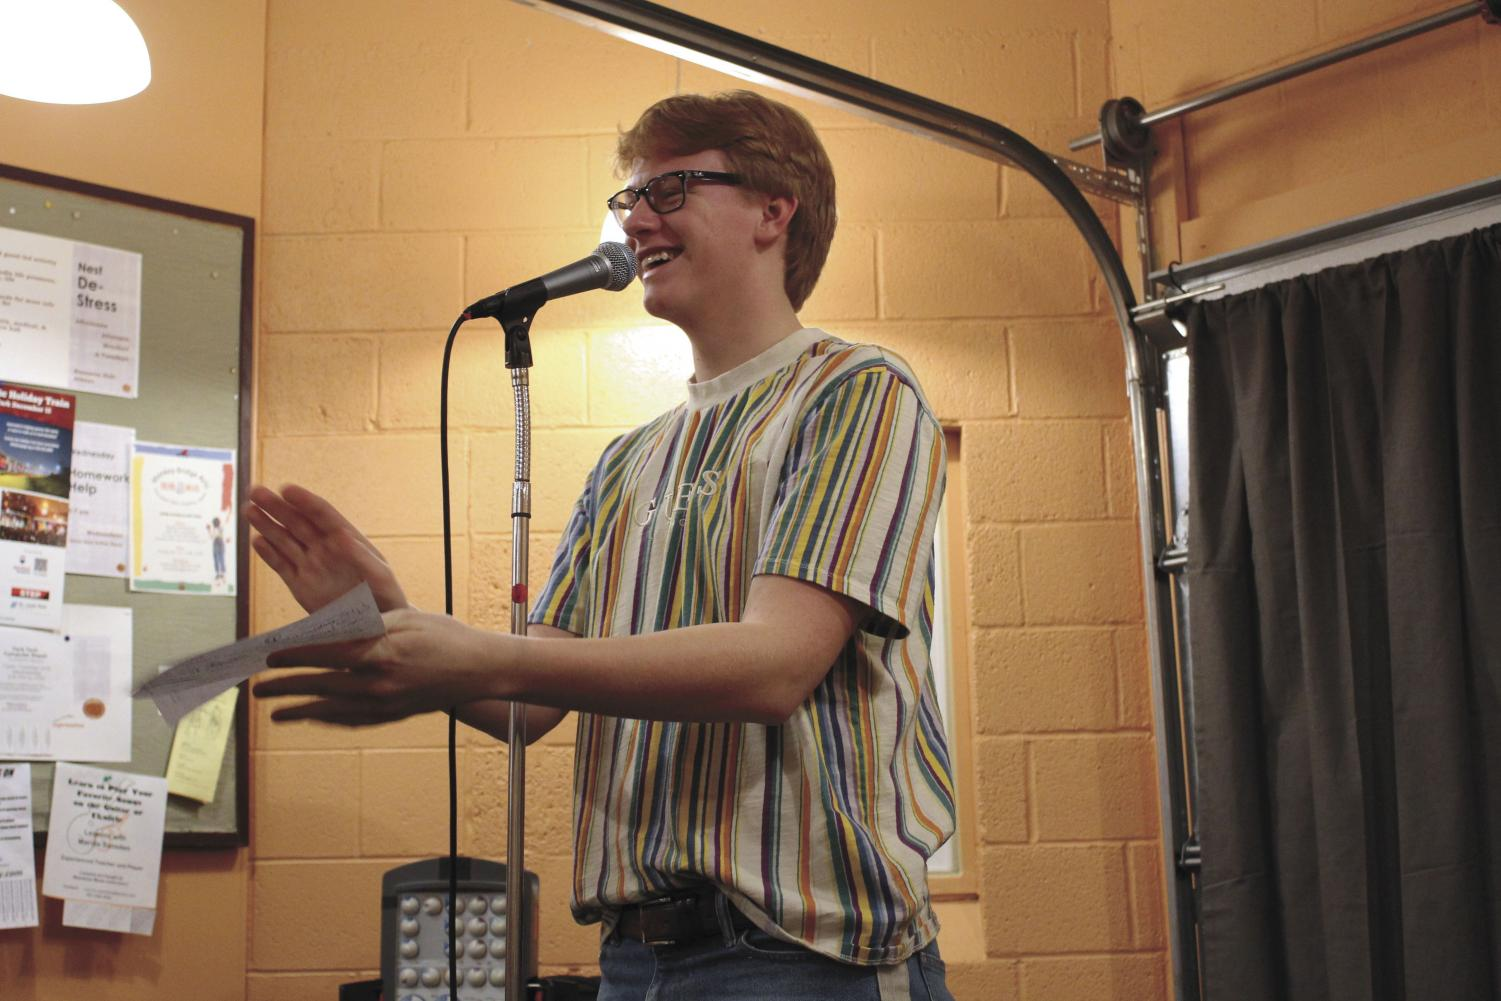 Junior Patrick Djerf announces the next performer at the Nest open mic night Dec. 14. The event was to promote the Nest and showcase student's musical talents.